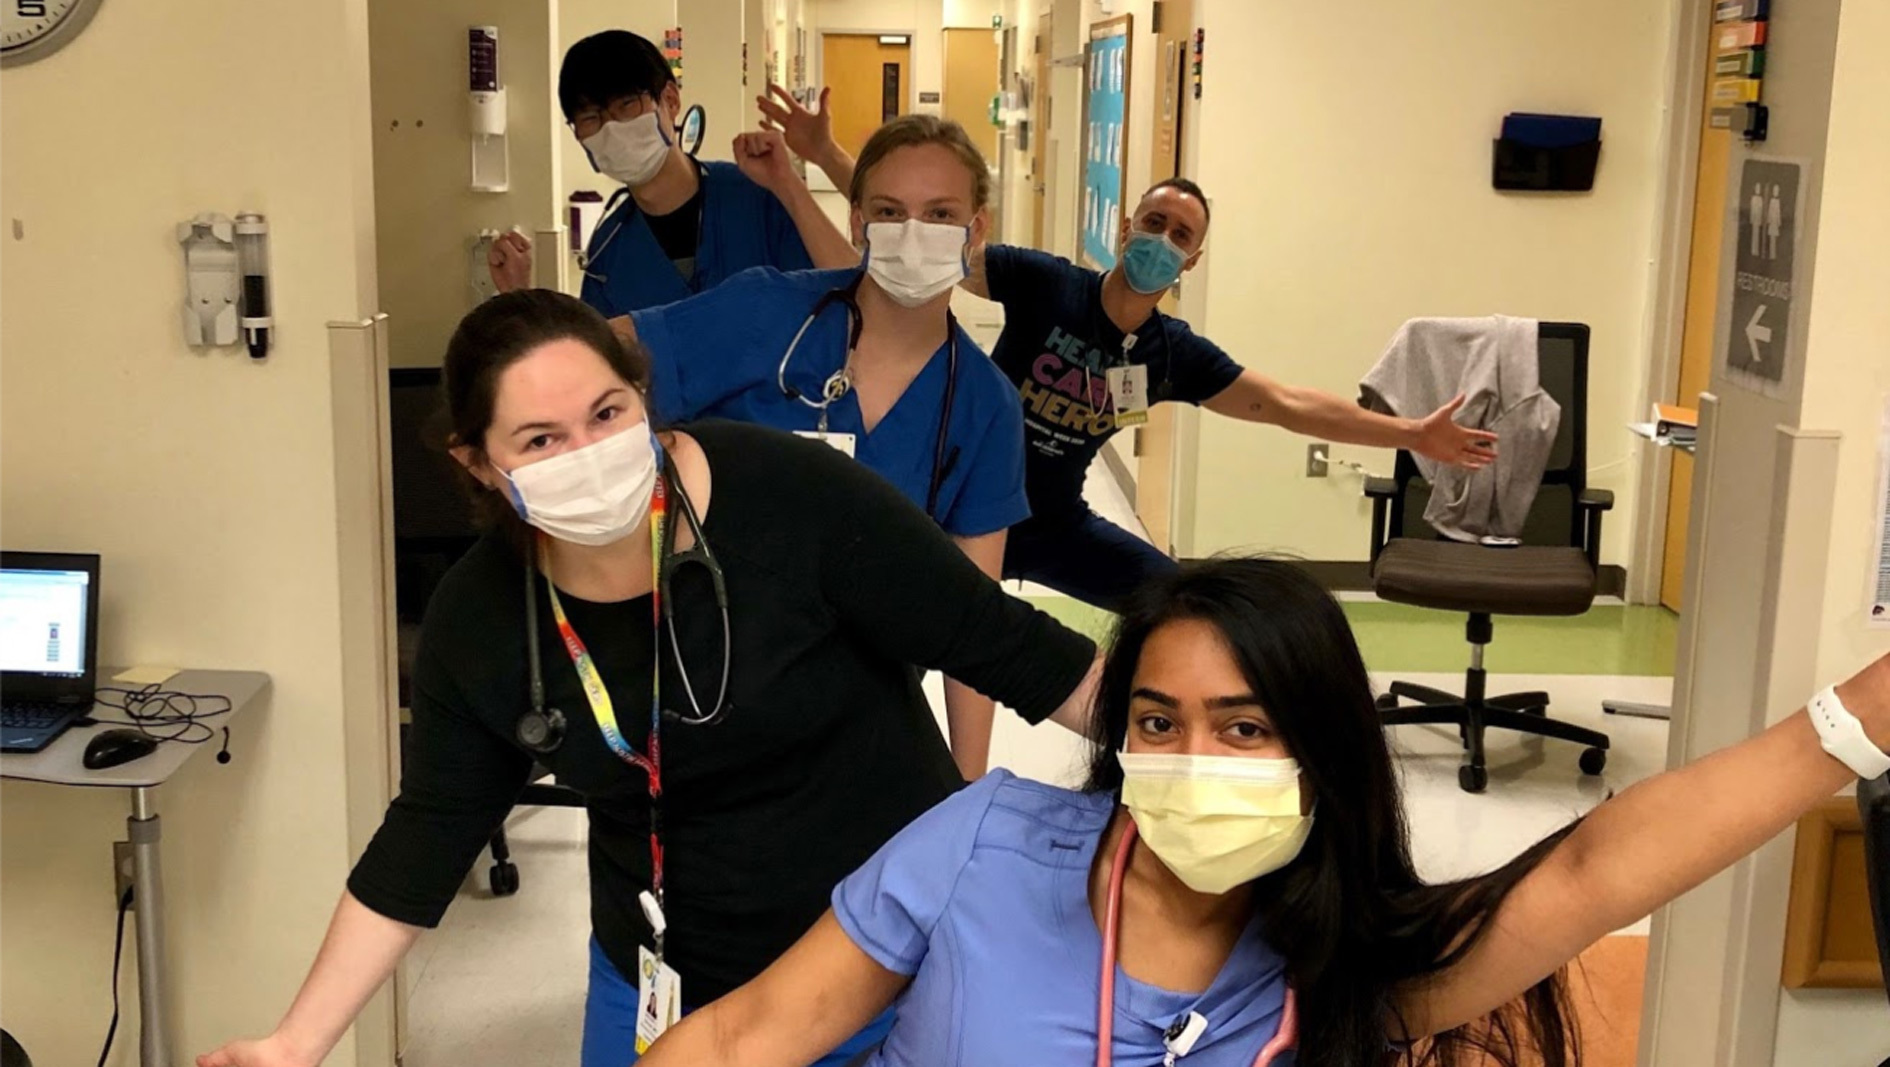 A group of pediatrics residents having fun at work.